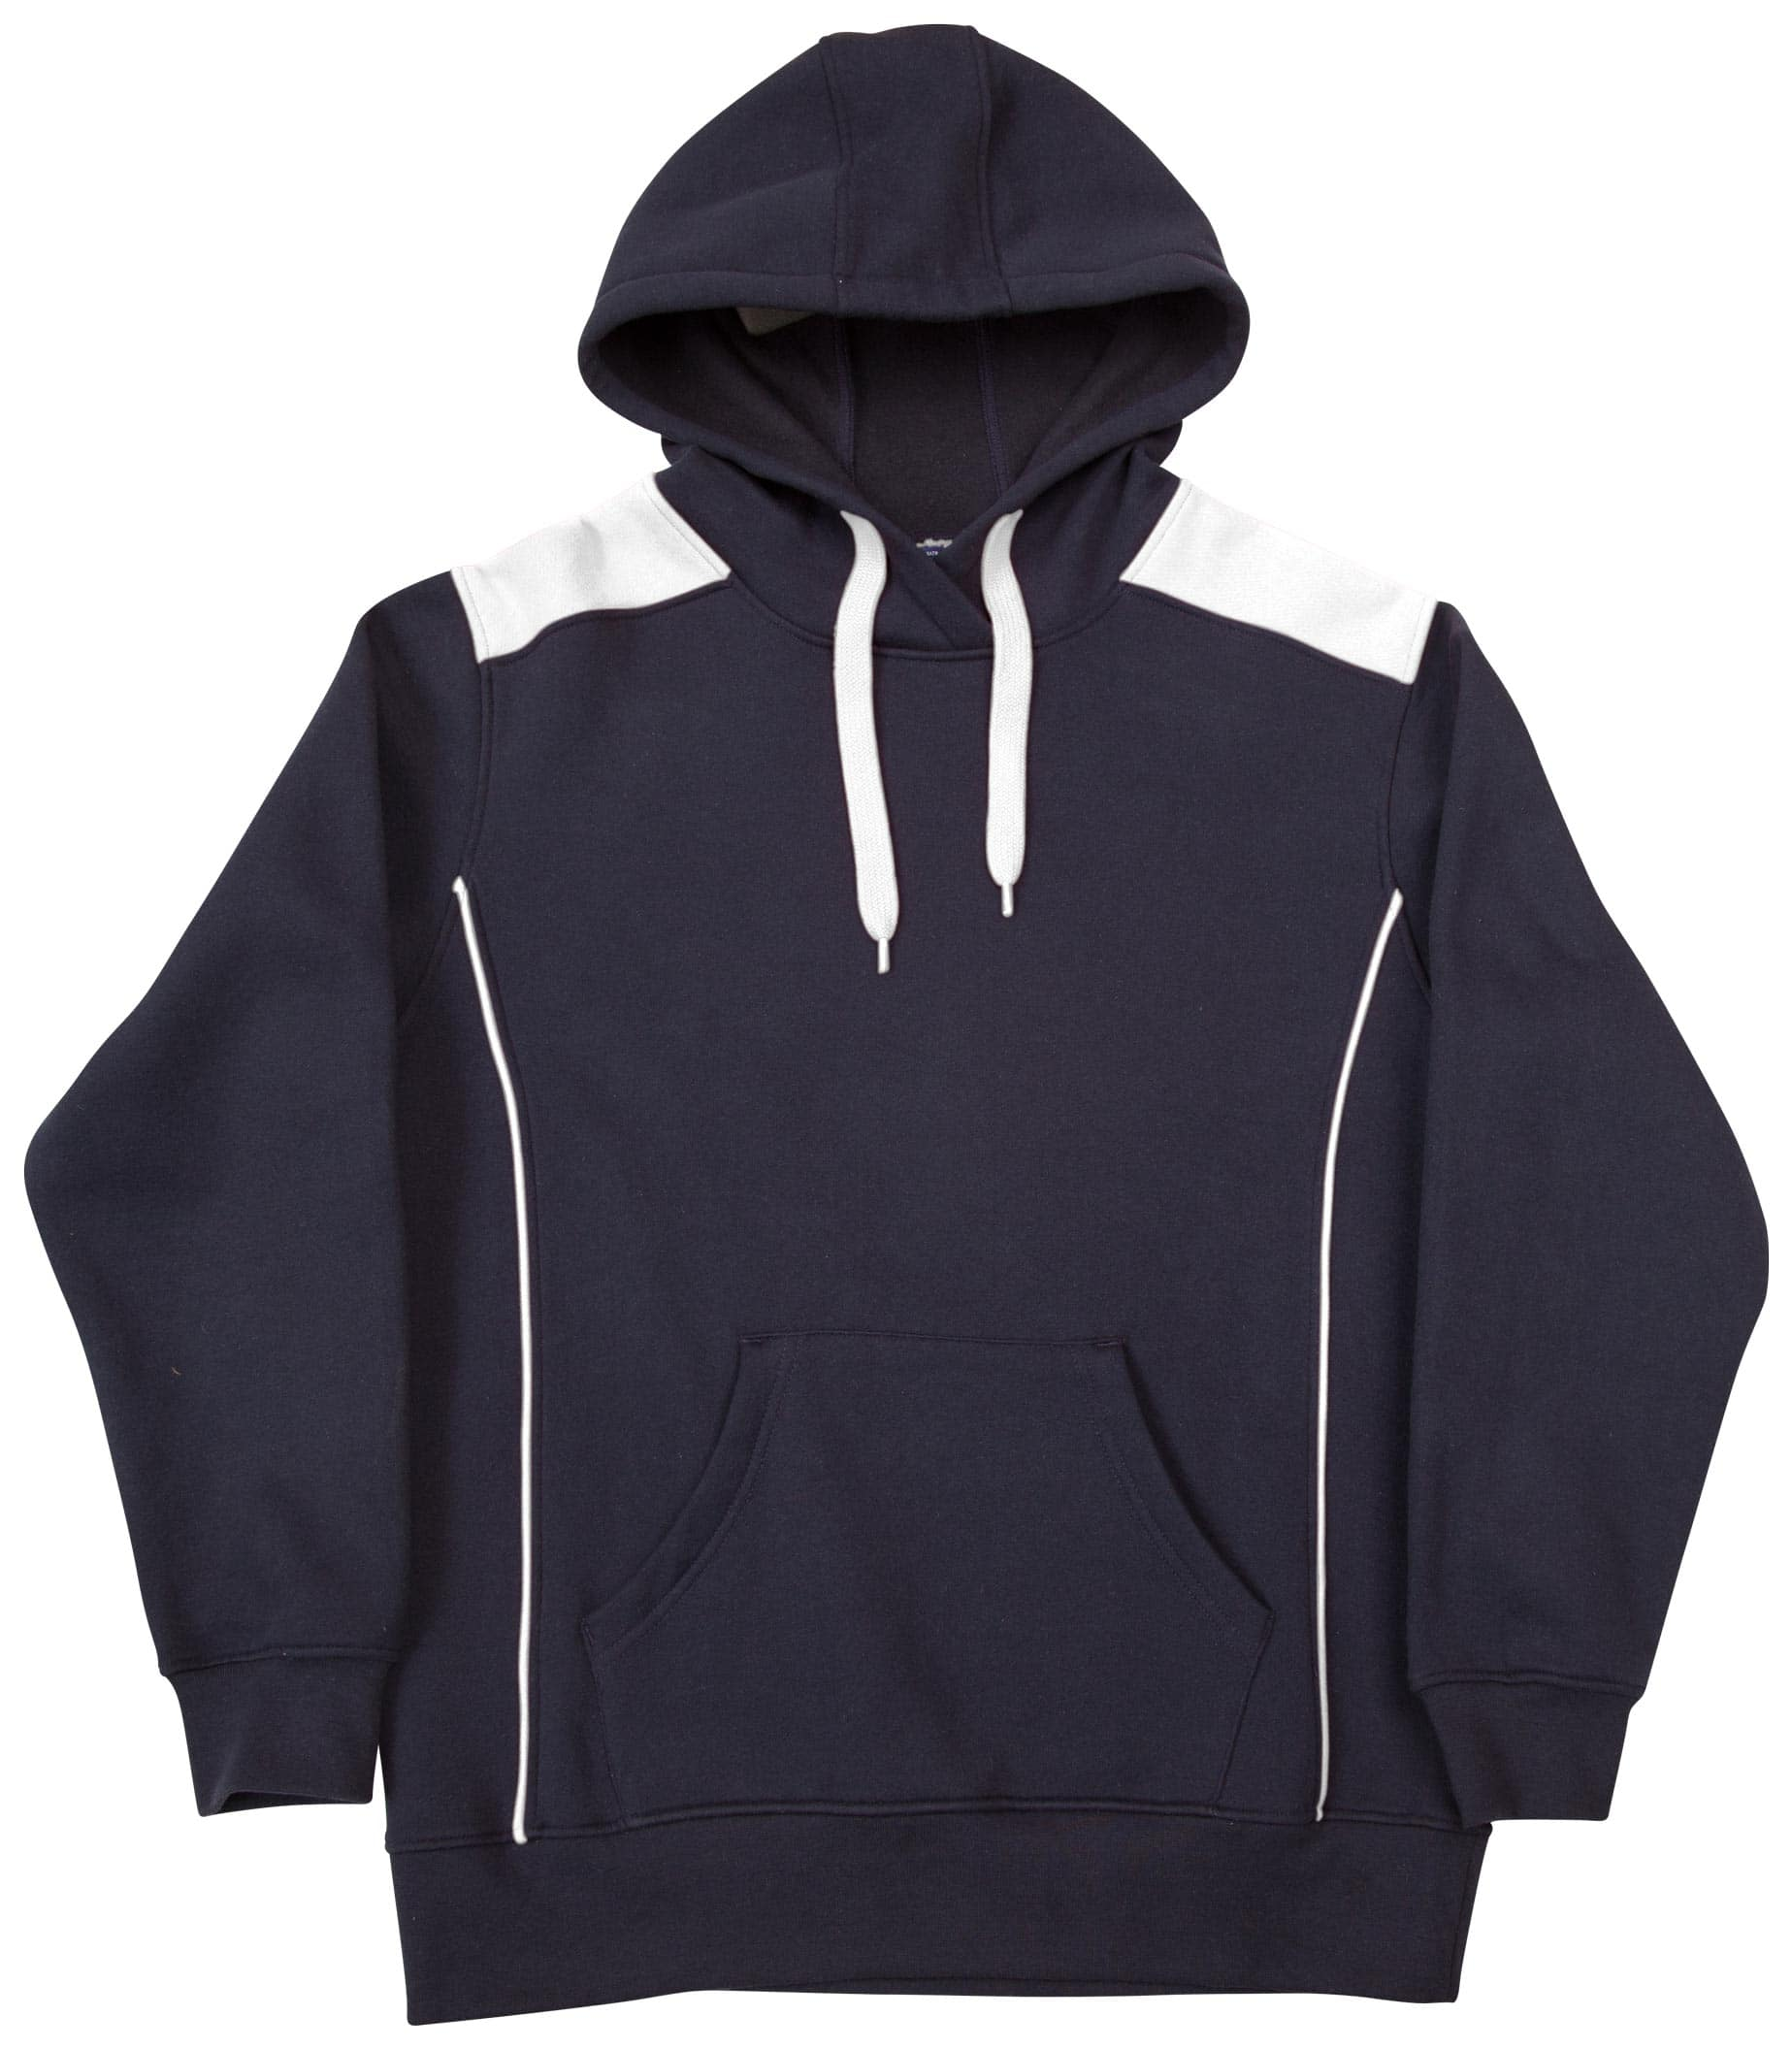 FL19 Adults' Close Front Contrast Fleece Hoodie